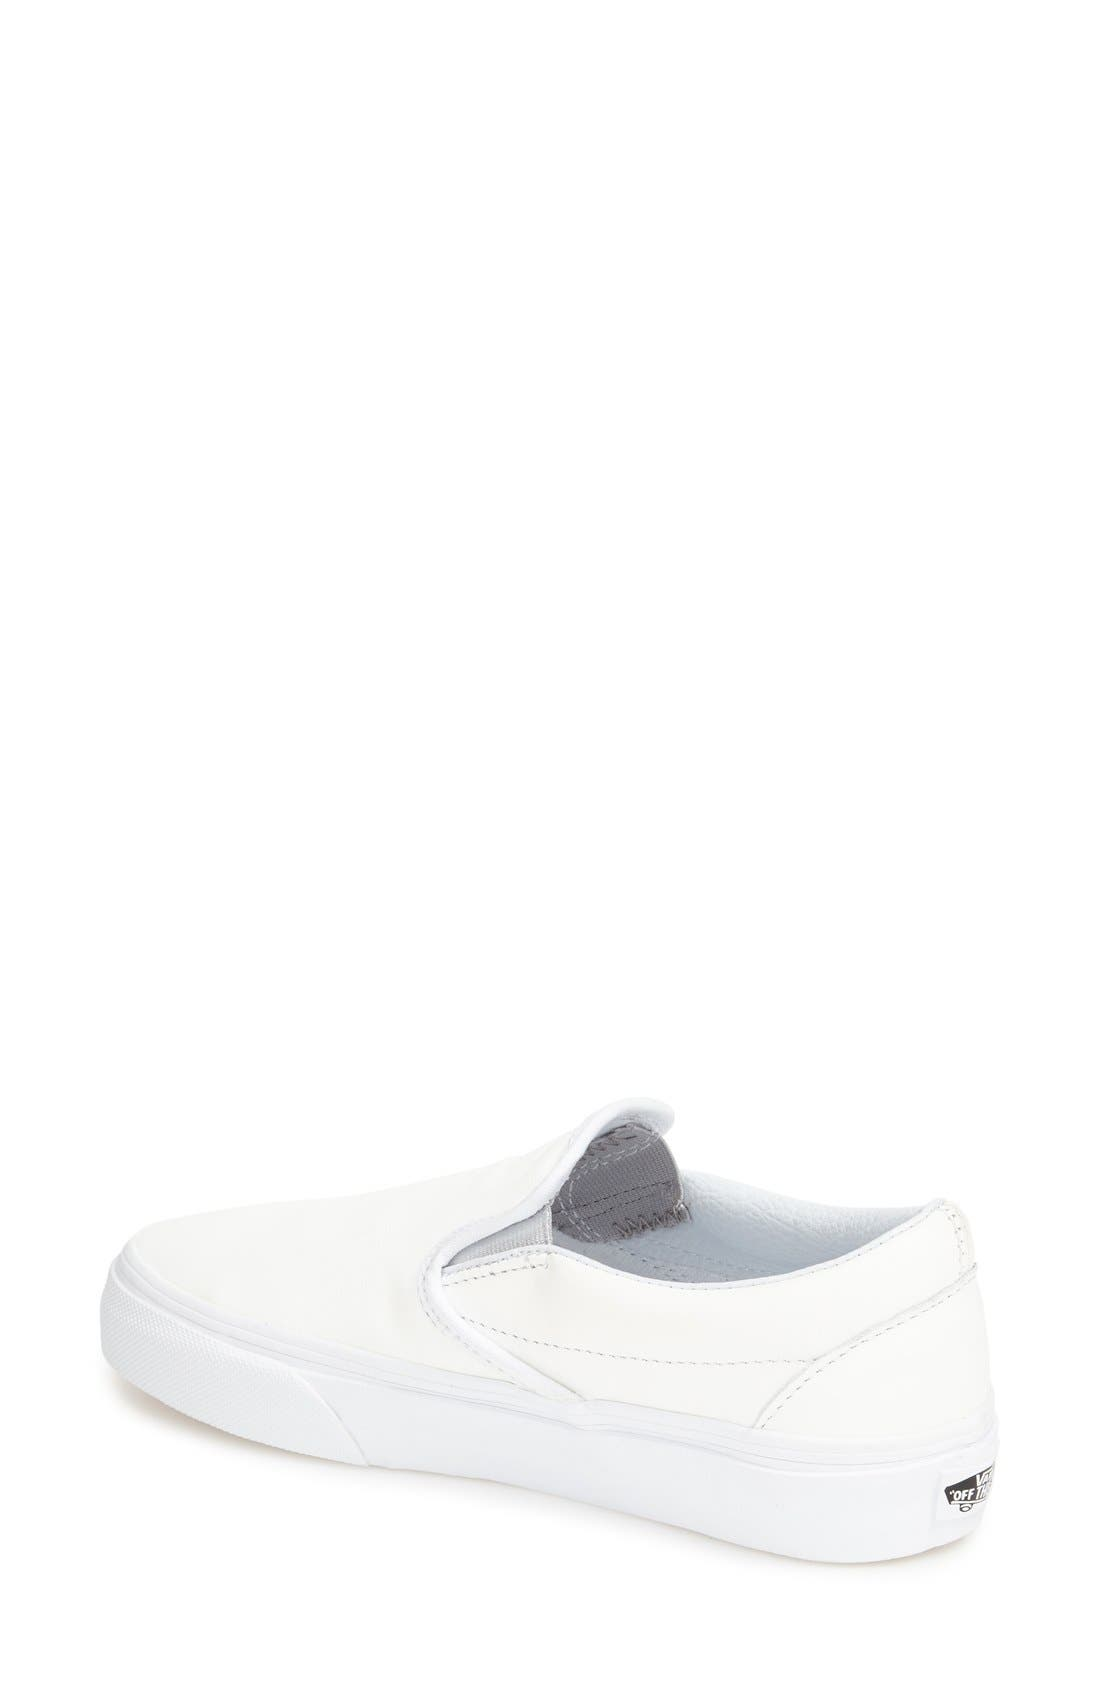 Classic Slip-On Sneaker,                             Alternate thumbnail 324, color,